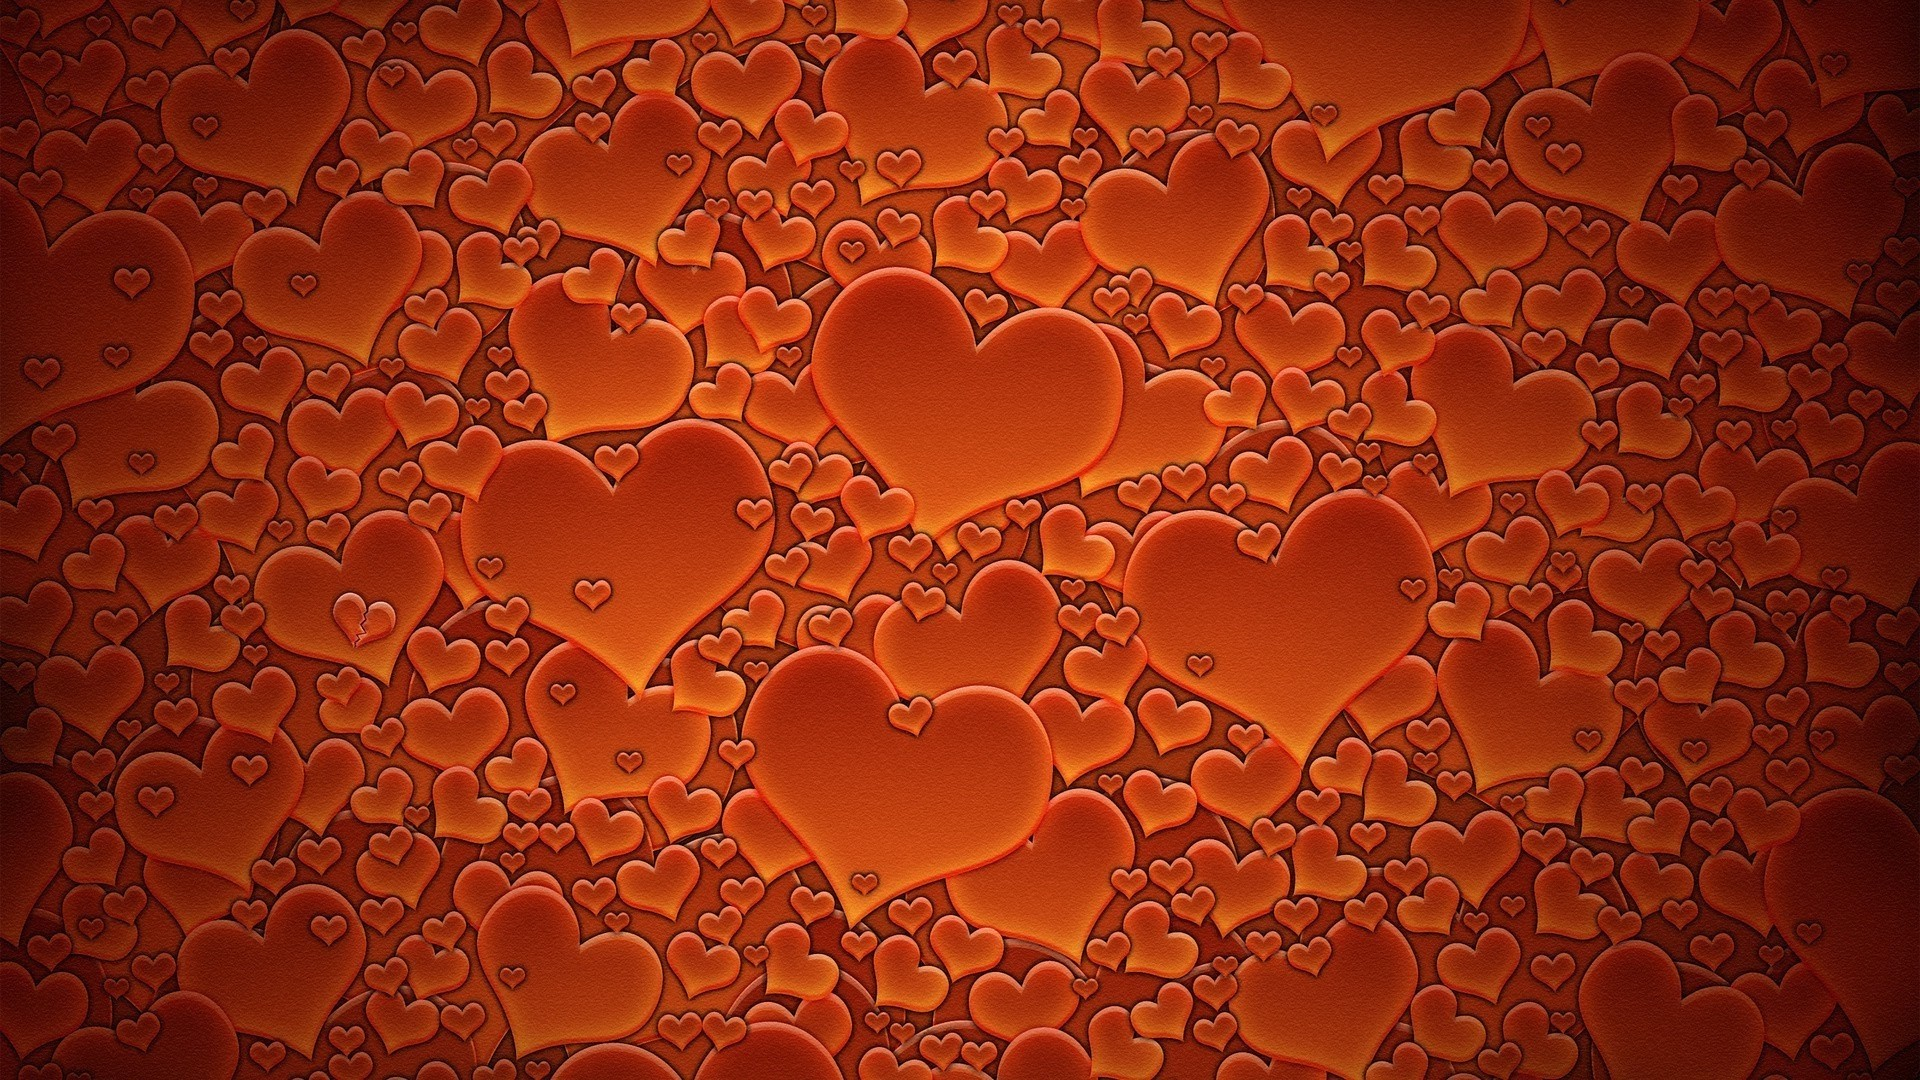 Heart hd wallpaper download